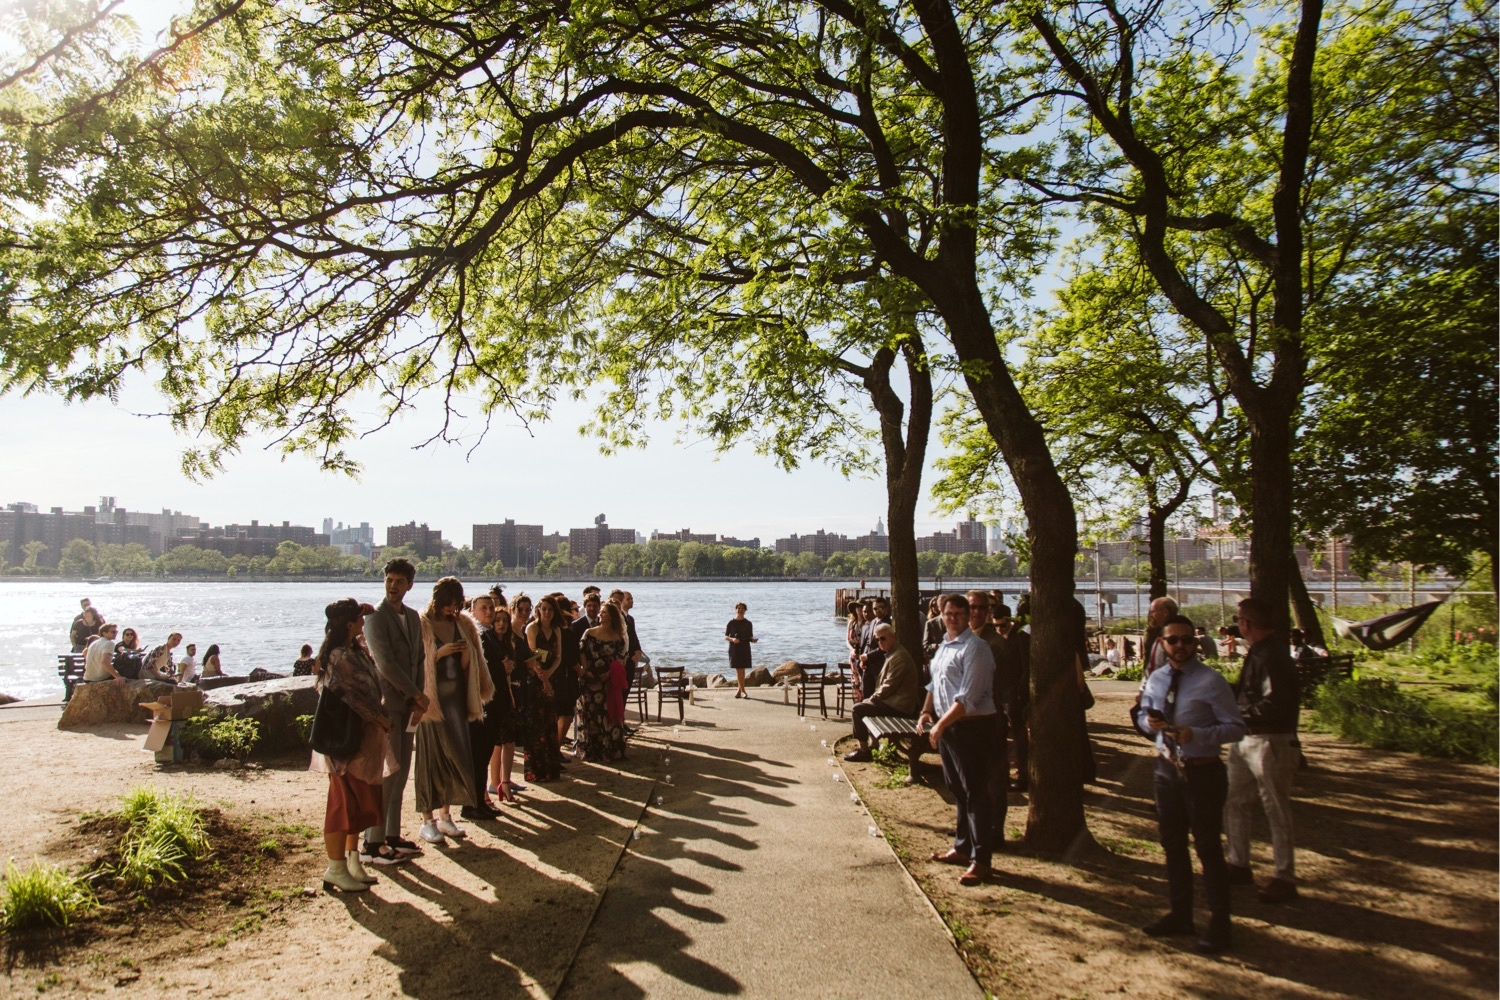 The guests for the ceremony are gathered at grand ferry park, a large tree shades all of them with the waterfront in the background.